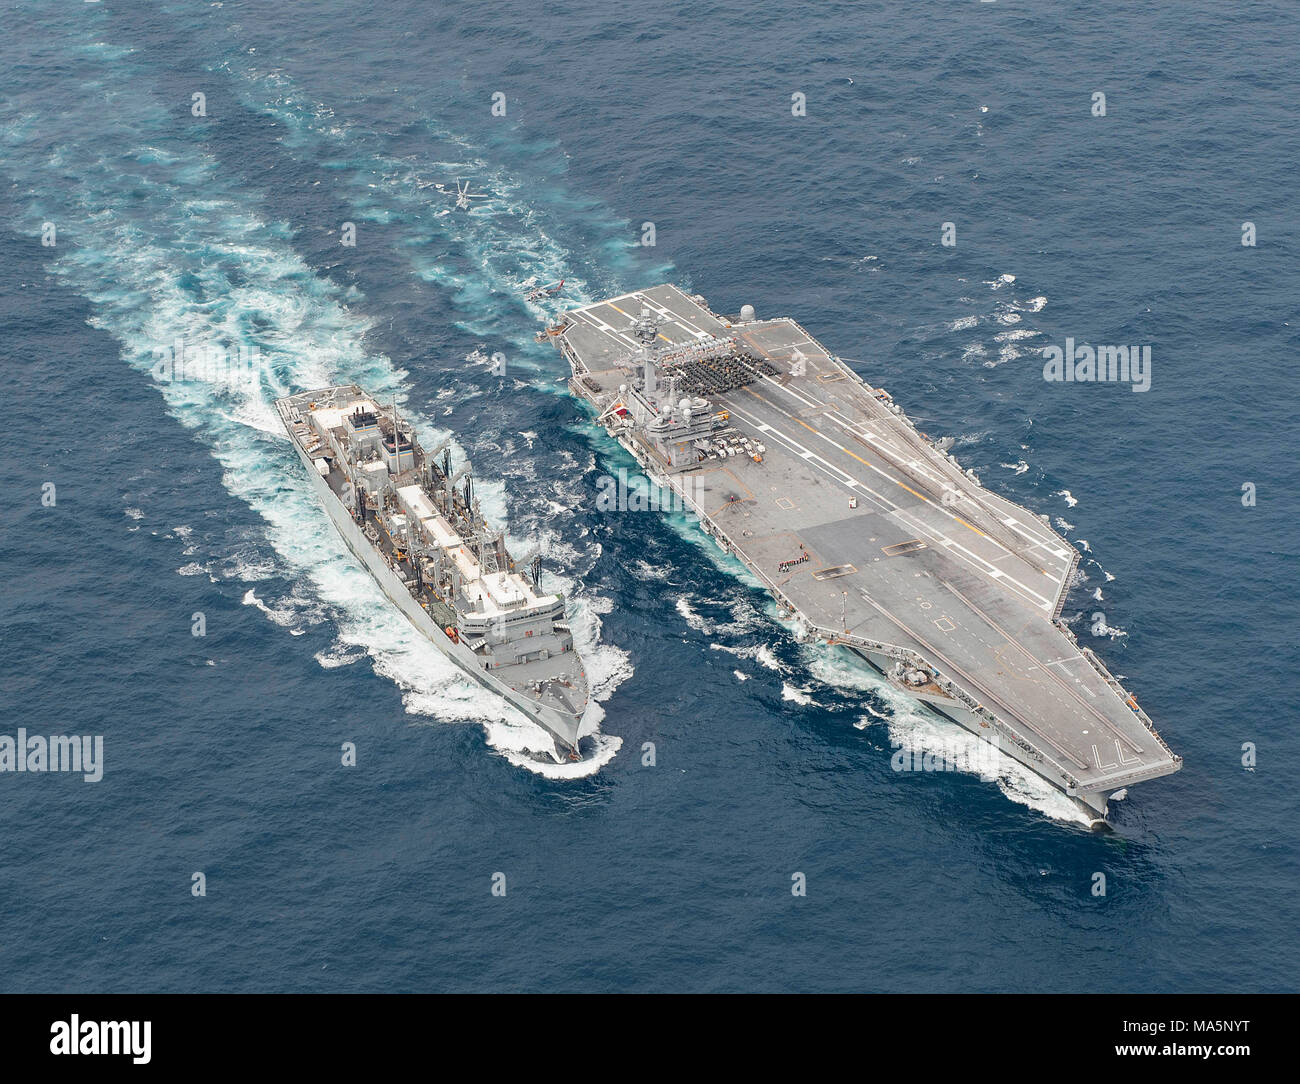 180327-N-JC445-0547 ATLANTIC OCEAN (March 27, 2018) The fast combat support ship USNS Supply (T-AOE 6) sails alongside the aircraft carrier USS George H.W. Bush (CVN 77) during a replenishment-at-sea. The ship is underway conducting sustainment exercises to maintain carrier readiness. (U.S. Navy photo by Mass Communication Specialist 3rd Class Mario Coto) - Stock Image